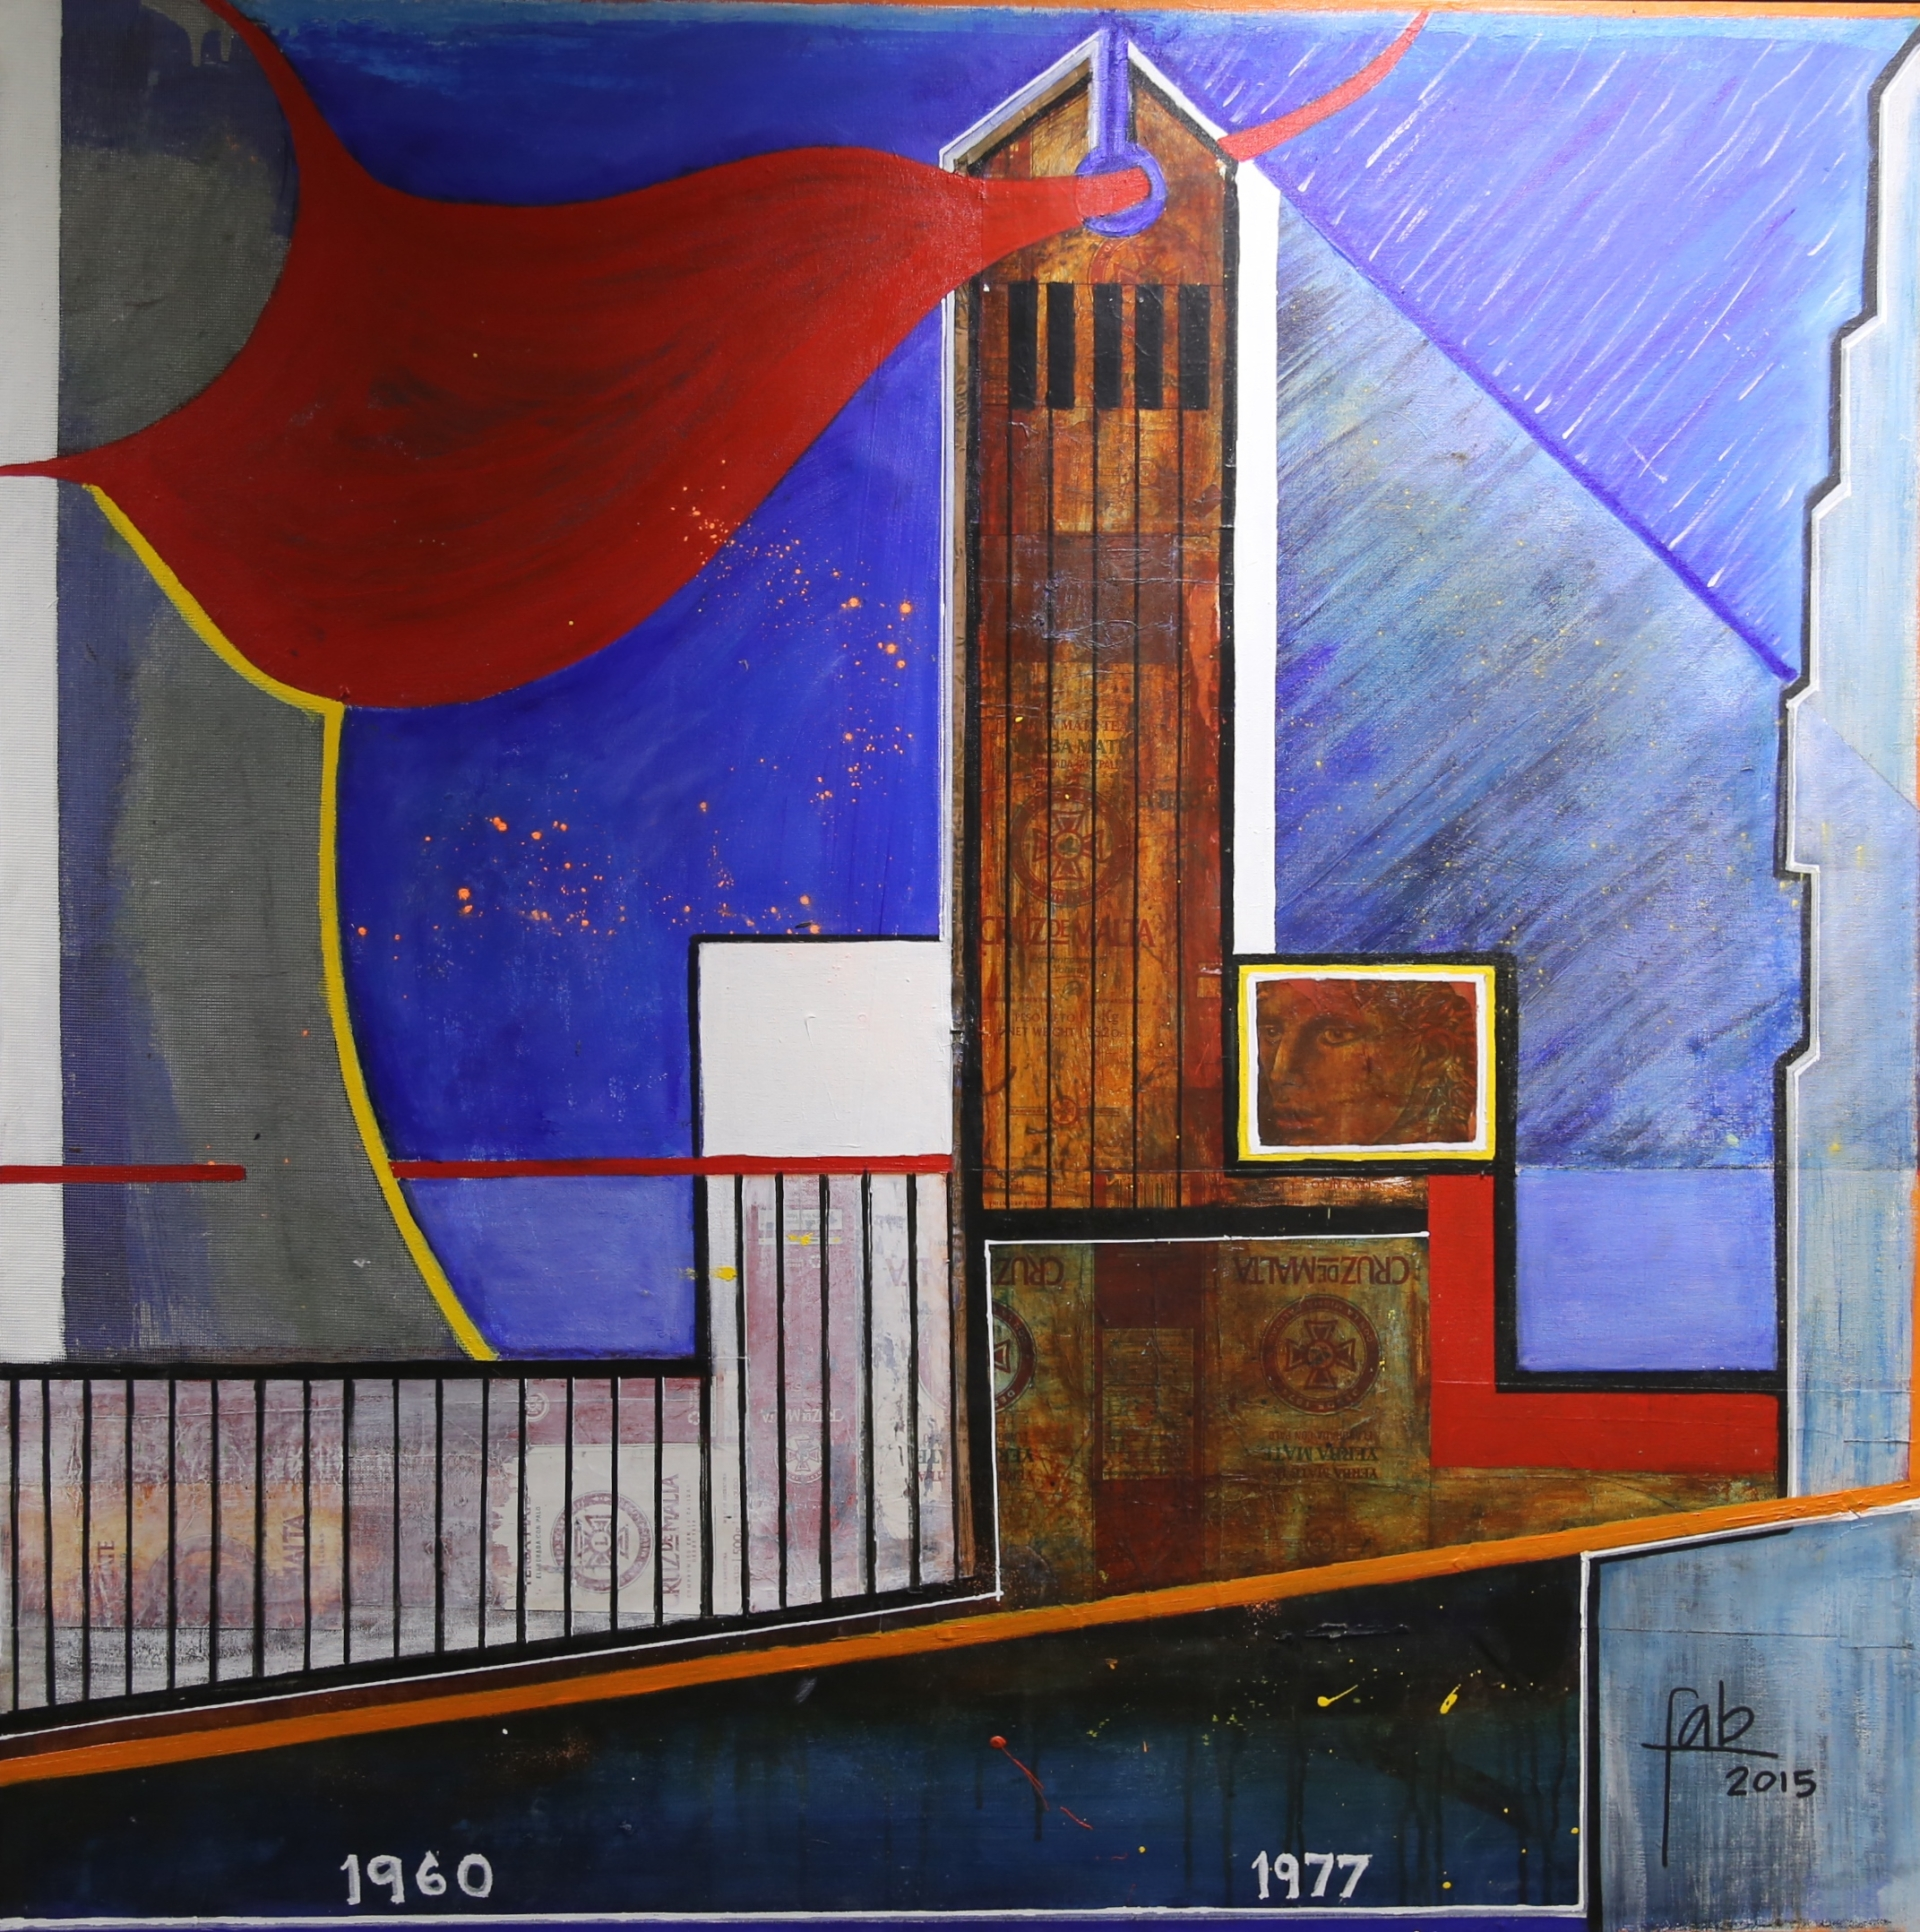 """<b>""""Monumento""""</b><span style= """"font-size:14px"""">(2015)</span><br><p style = """"font-size:14px"""">Acrylic on canvas and wood<br> 45 in x 45 in<br>  © Flavio Bisciotti</p>"""